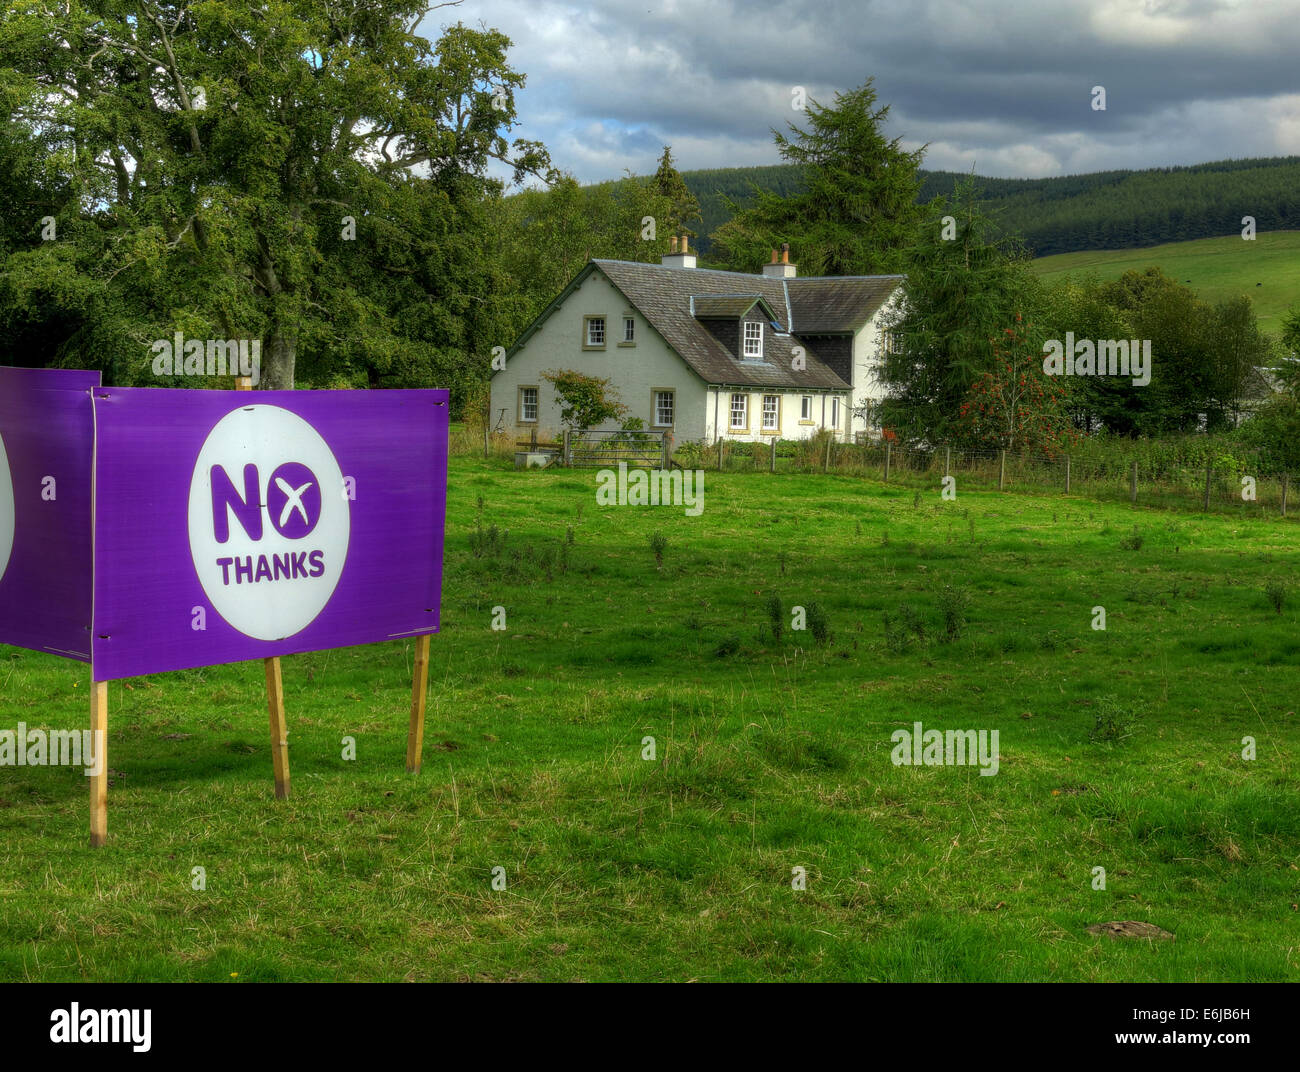 Sep,field,fields,rural,borders,decides,votes,ballot,vote,Scottish,Field,September,2014,Scotland,UK,debate,result,Scots,opinion,bettertogether,bright,sunshine,passion,Nothanks,publicity,indyref,indyref,Alastair,Darling,Alex,Salmon,Salmond,powers,power,for,holyrood,Edinburgh,City,of,Glasgow City,of,Edinburgh Fife North,Lanarkshire South,Lanarkshire Aberdeenshire Highland City,of,Aberdeen West,Lothian Renfrewshire Falkirk Dumfries,and,Galloway Perth,and,Kinross City,of,Dundee North,Ayrshire East,Ayrshire Scottish,Borders South,Ayrshire Angus East,Dunbartonshire East,Lothian West,Dunbartonshire Stirling East,Renfrewshire Argyll,and,Bute Moray Midlothian Inverclyde Clackmannanshire Na,h-Eileanan,Siar,(Western,Isles) Shetland,Islands Orkney,Islands,CNES